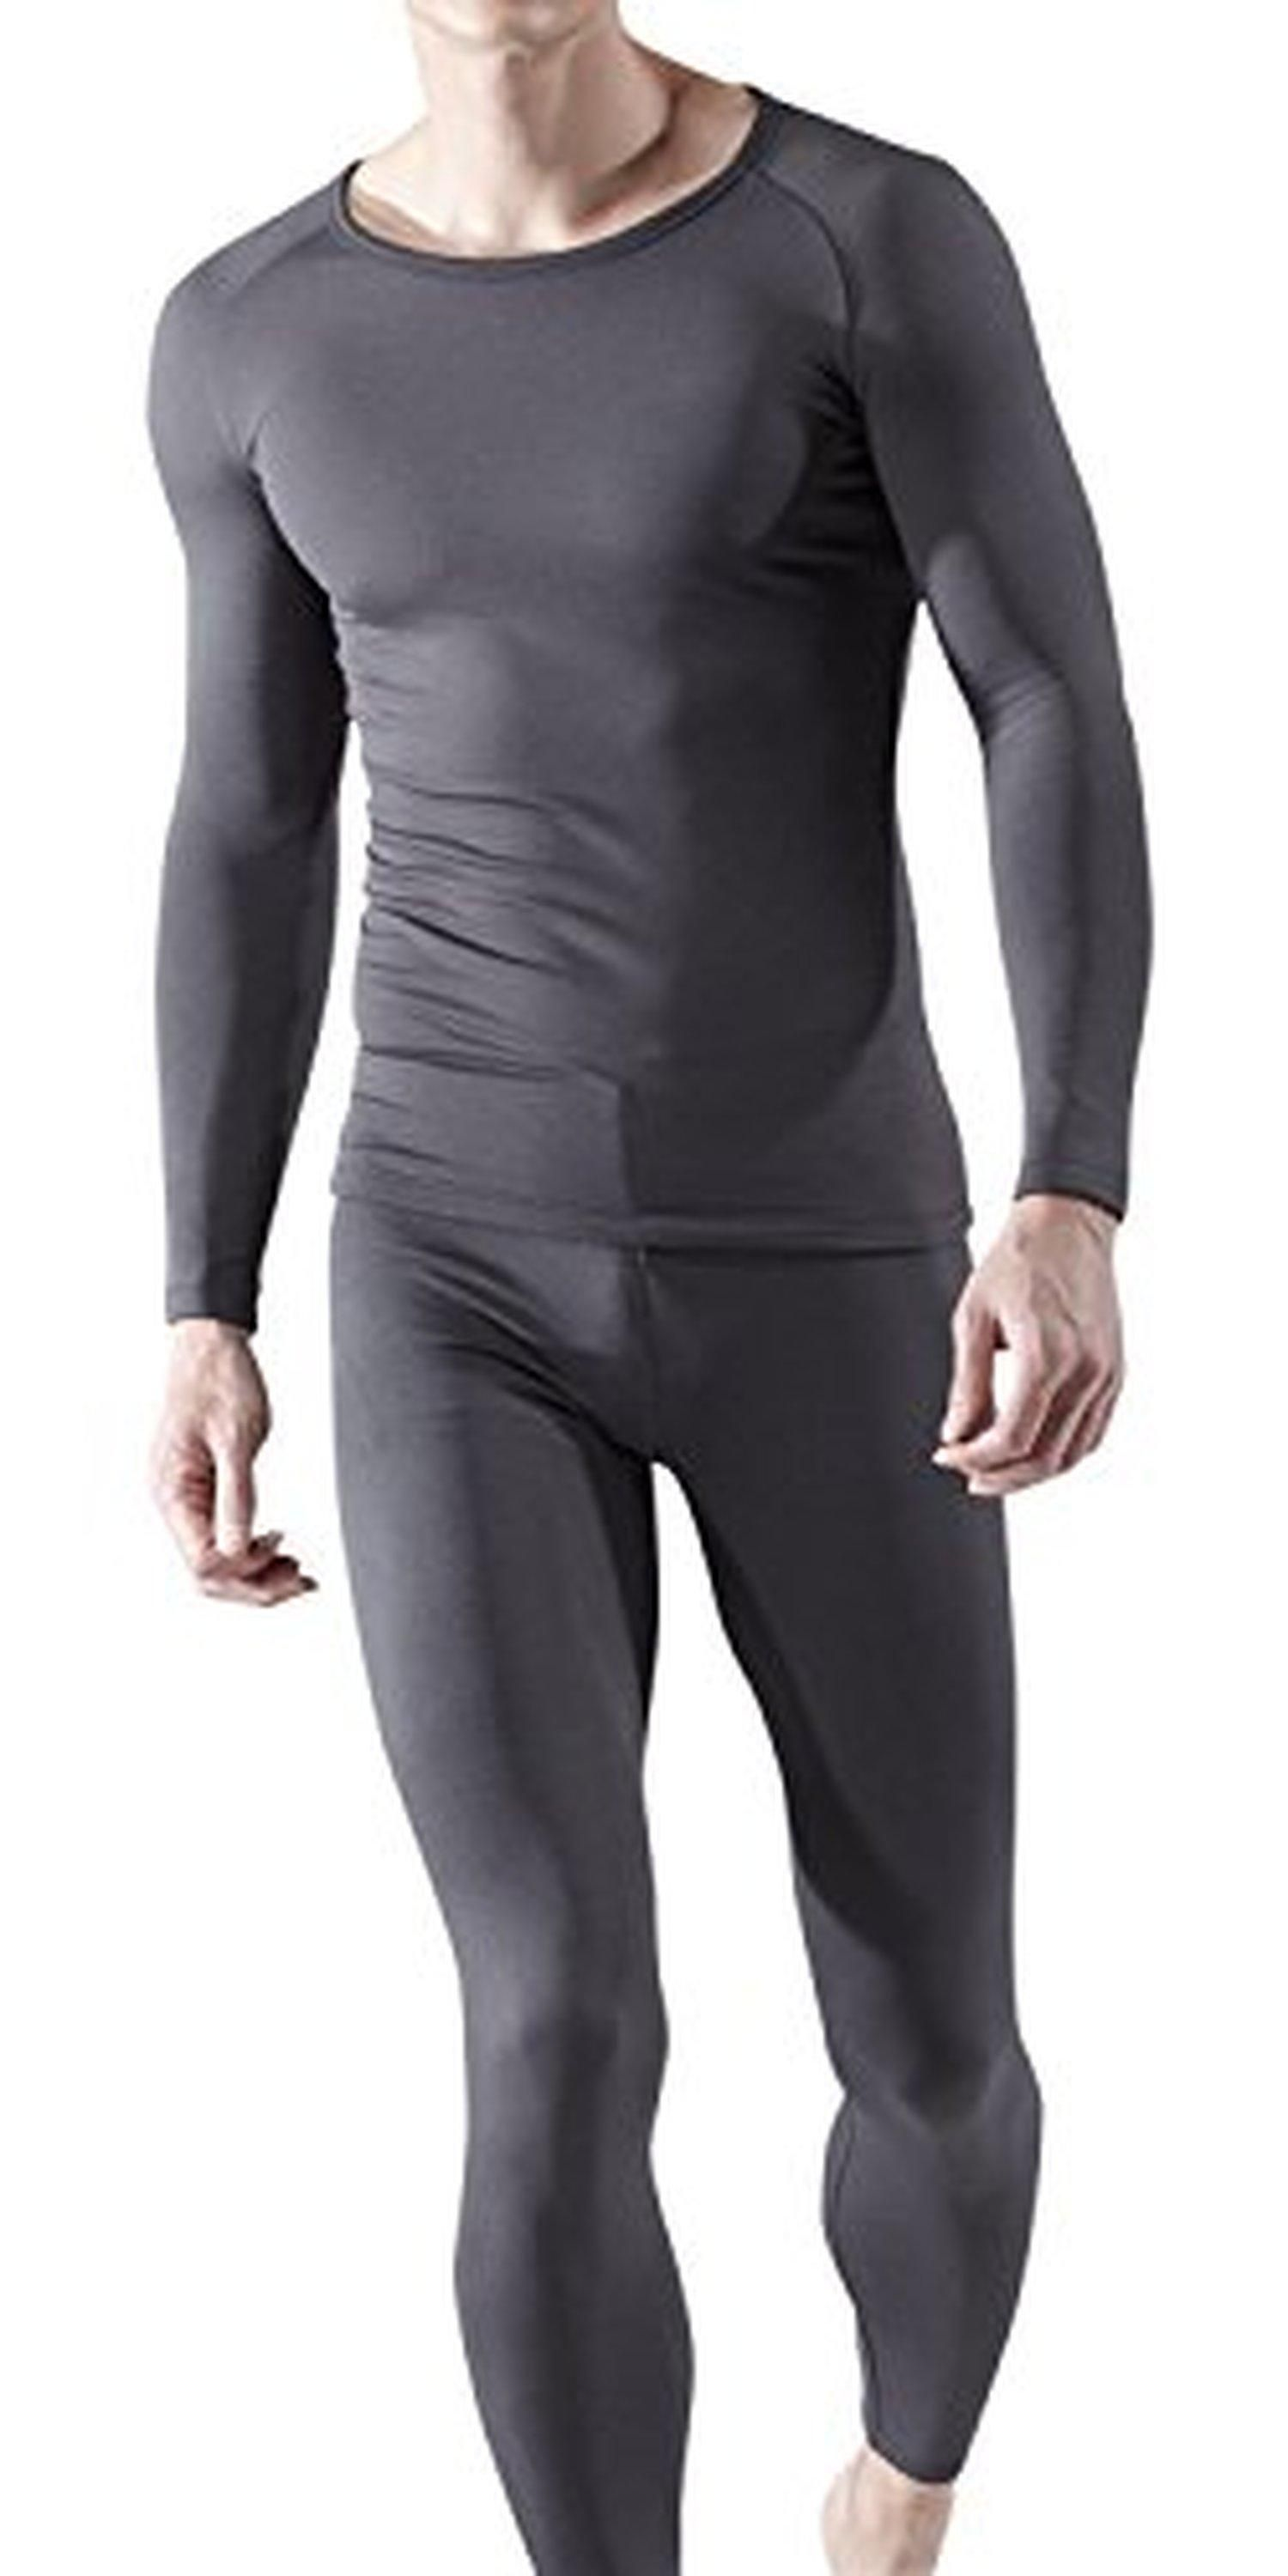 6b03d37e476 BU-MHS100-GRY Small j-M Blank Men s Thermal Microfiber Fleece Lined Top   Bottom  Underwear Set MHS100 - Brought to you by Avarsha.com